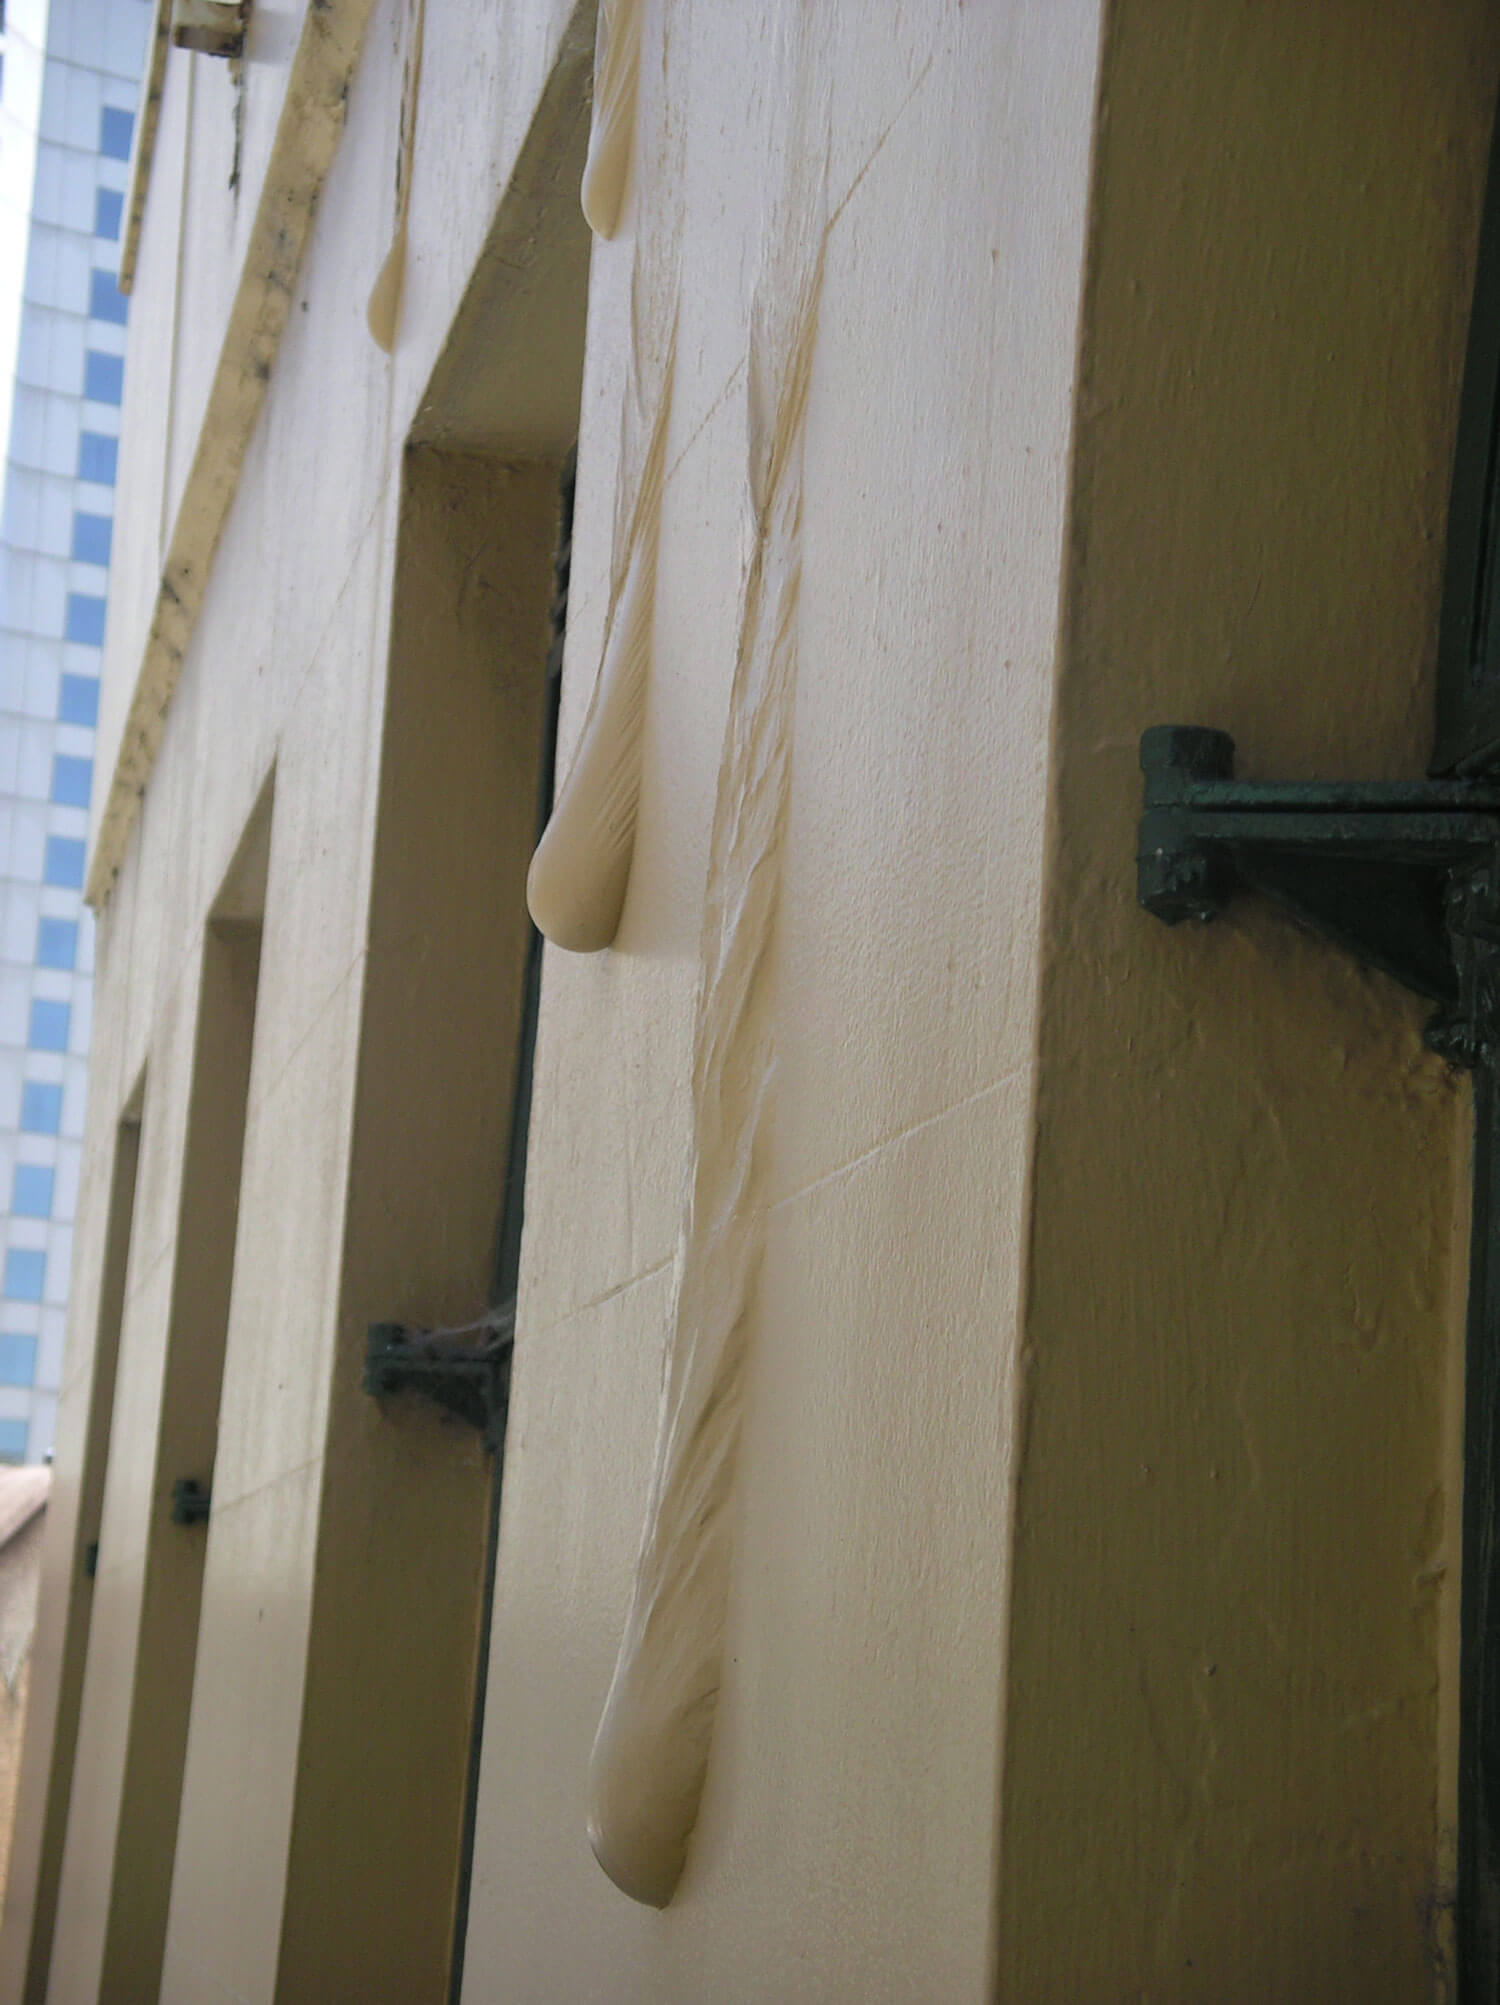 Water Ingress Caused By Failed Waterproofing - Building Water Leaks - Remedial Building Services